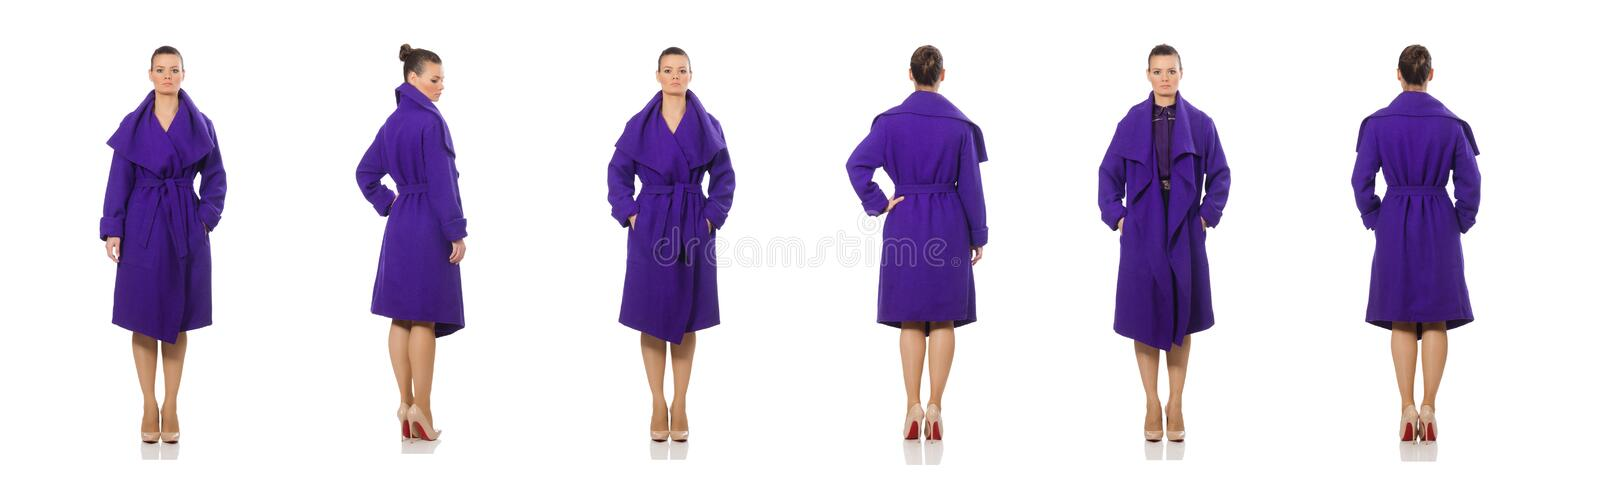 The caucasian model in purple coat isolated on white stock photos